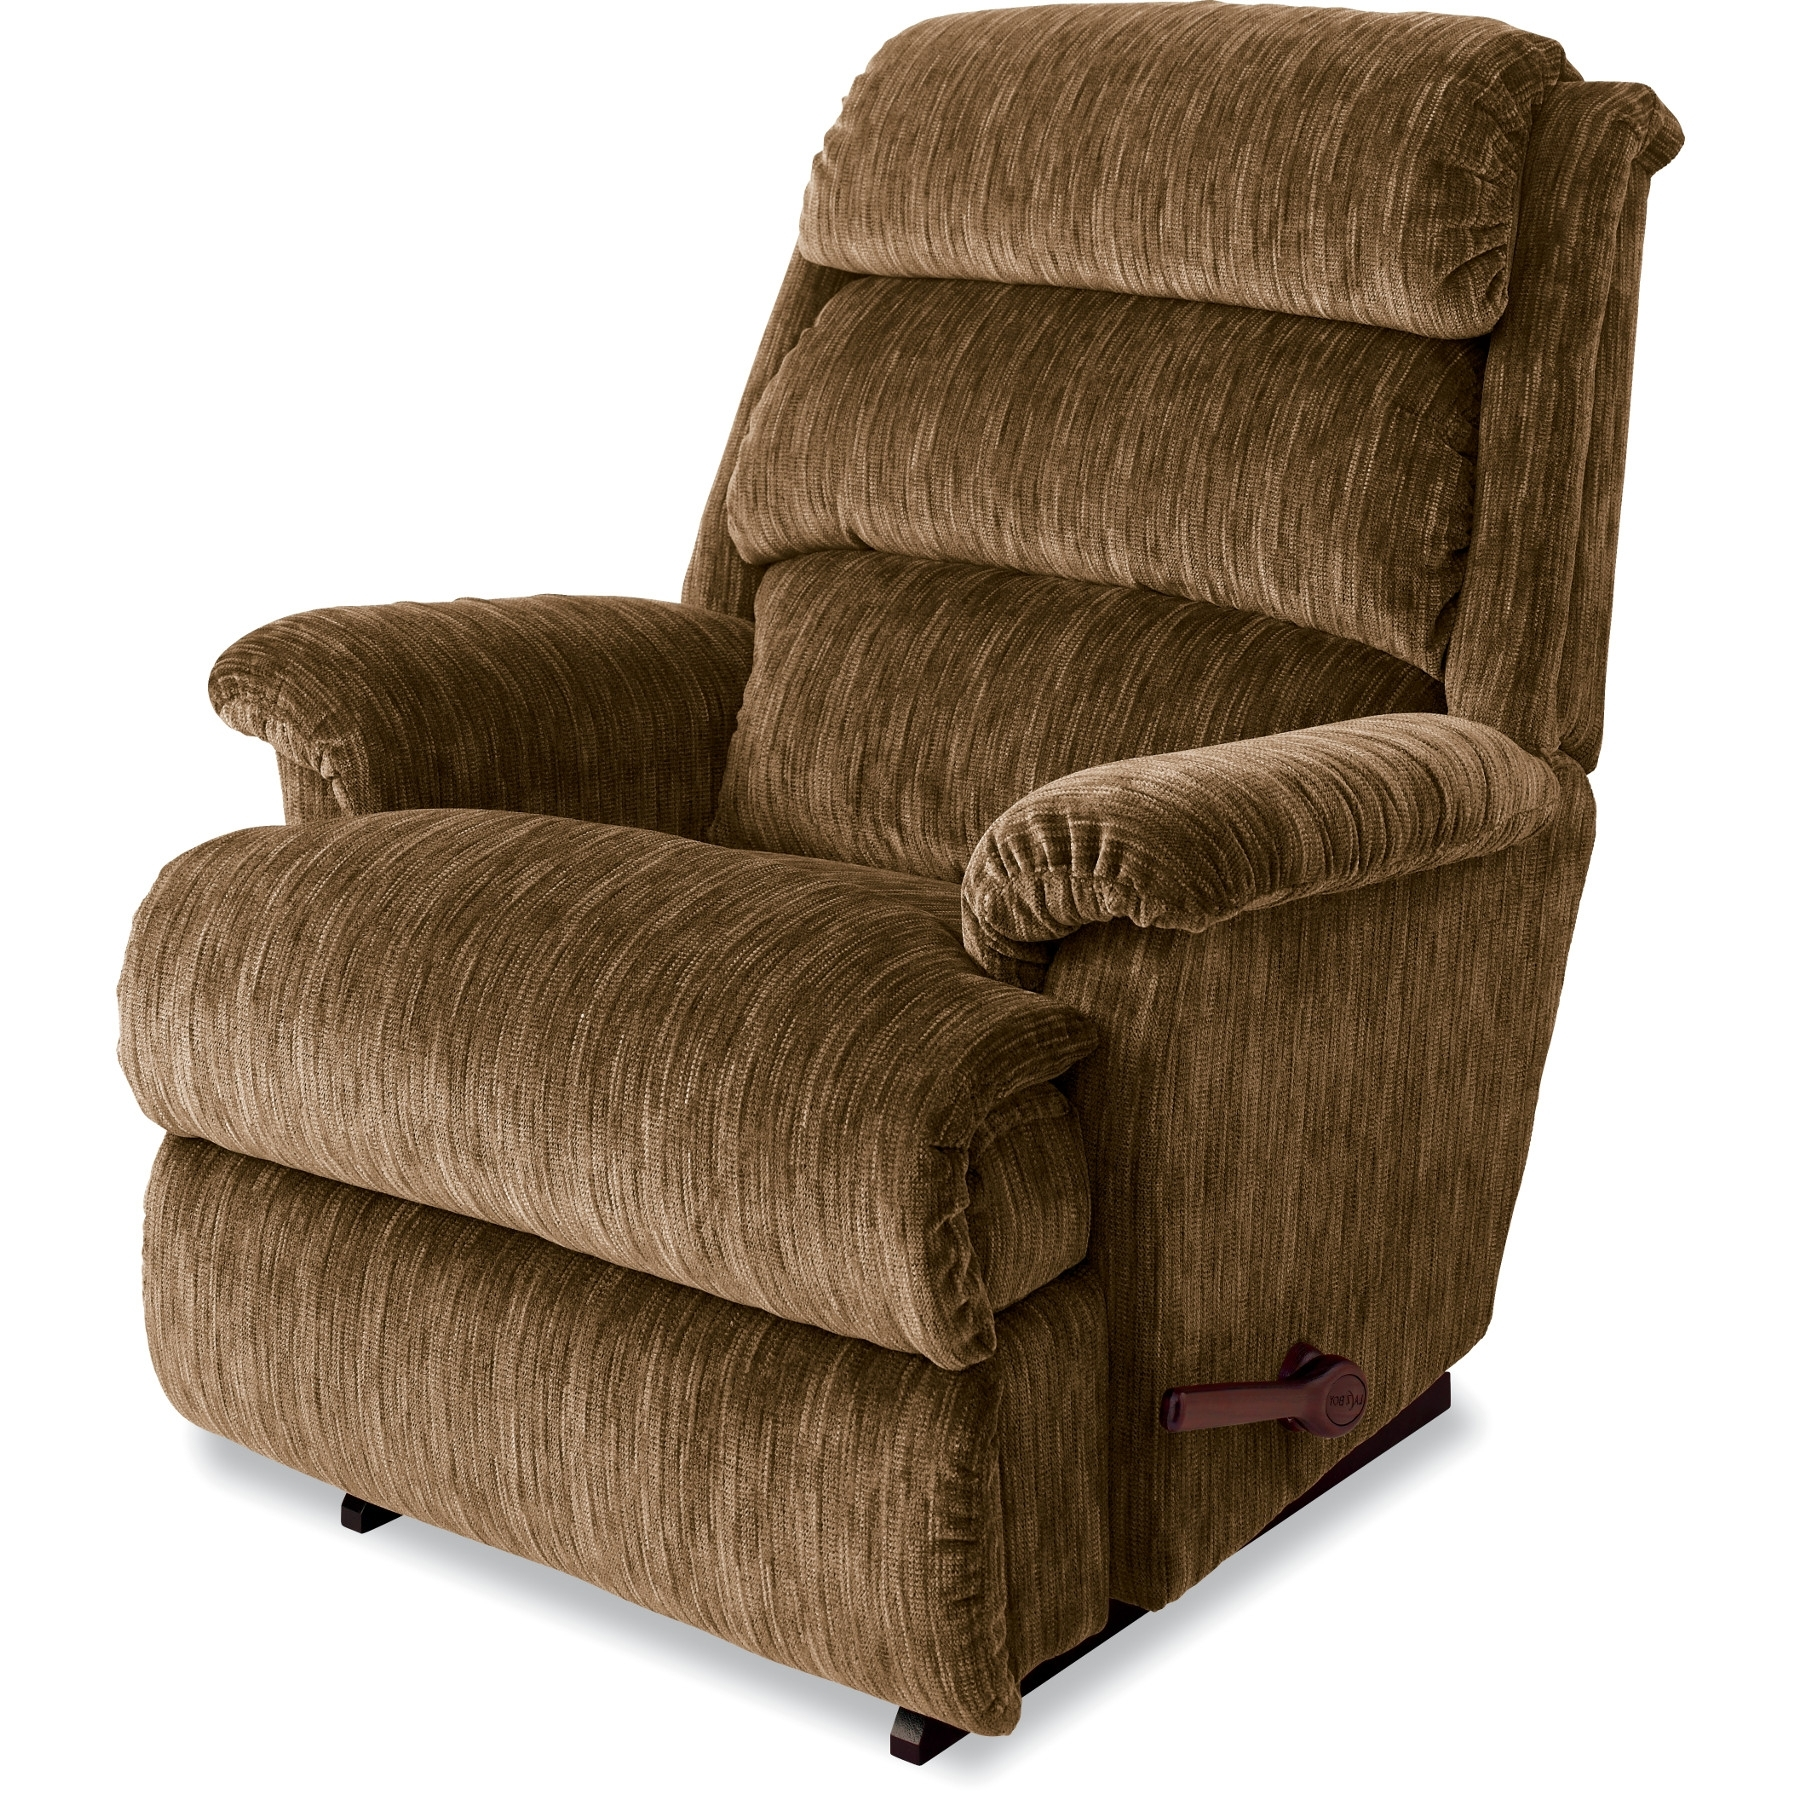 Electric Lazy Boy Chair Lazy Boy Chaise Sofa Boys Recliner Lazy Pertaining To Most Recent Lazy Sofa Chairs (View 5 of 15)